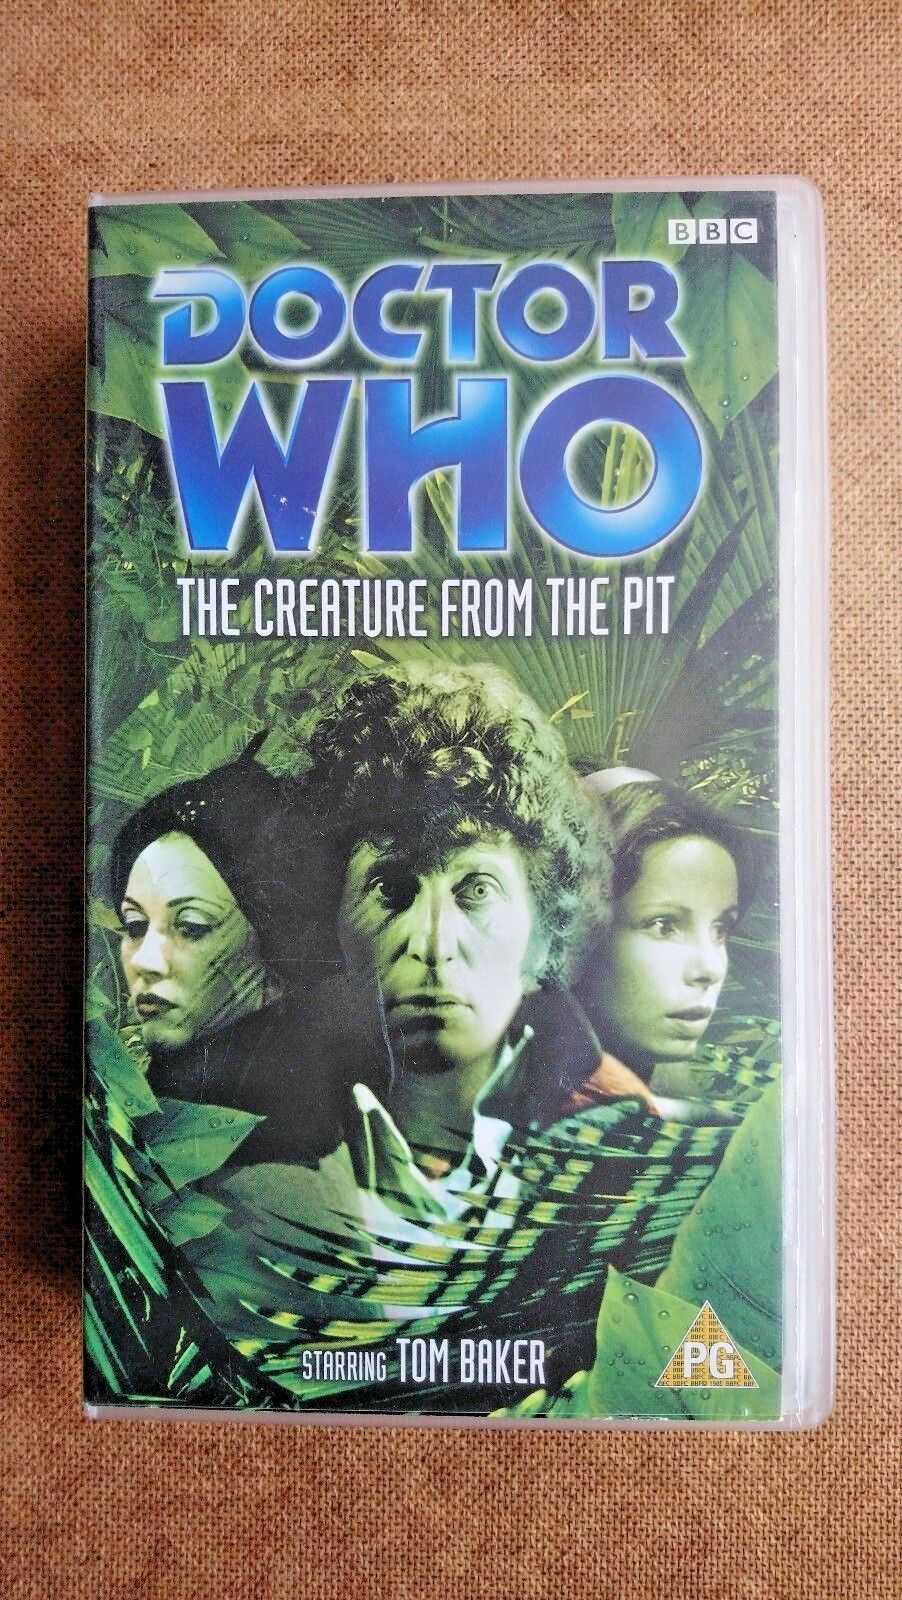 Doctor Who - The Creature From The Pit (VHS, 2002) - Tom Baker